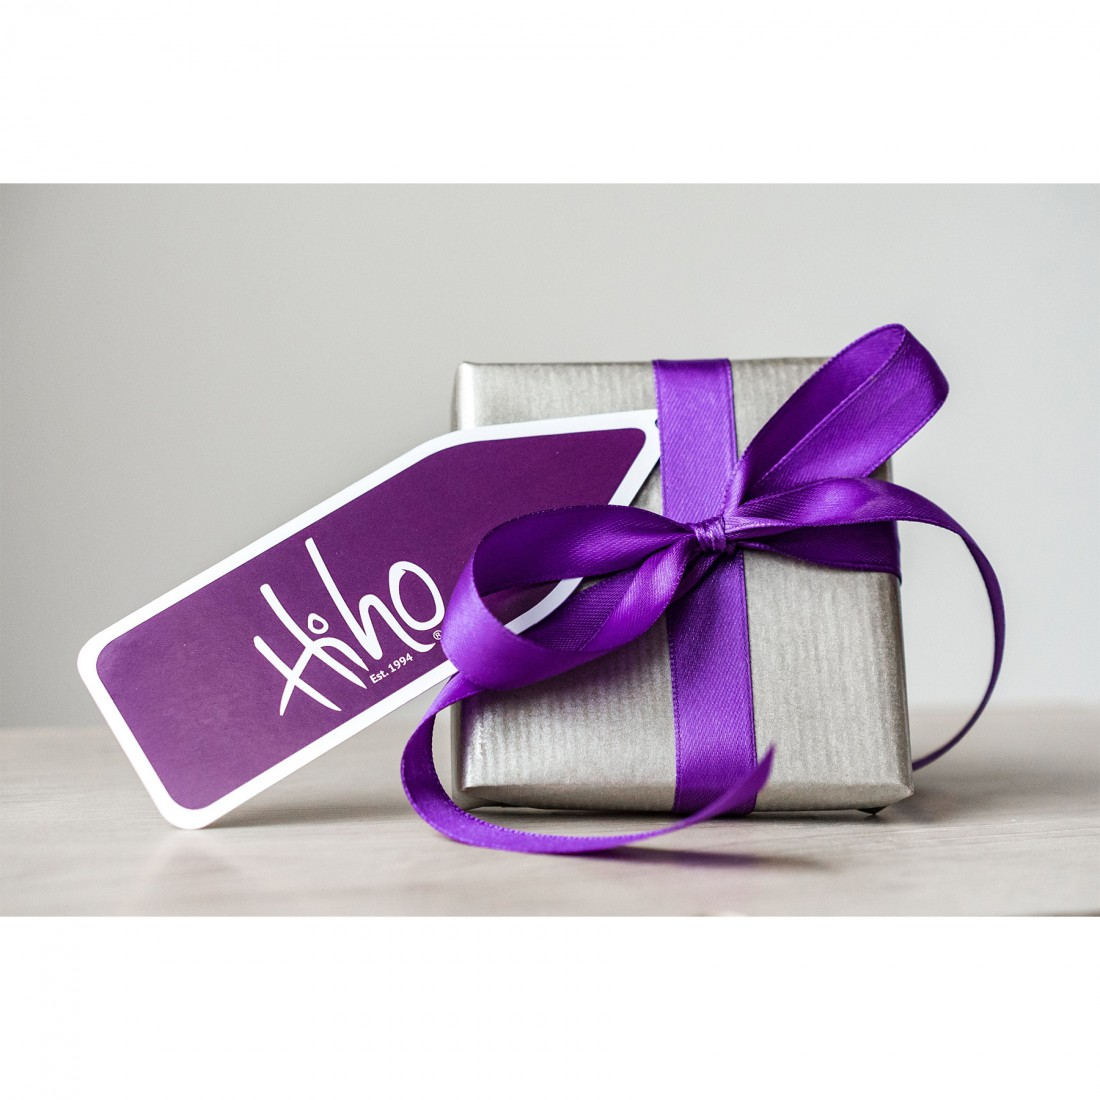 Gift wrapped and bow